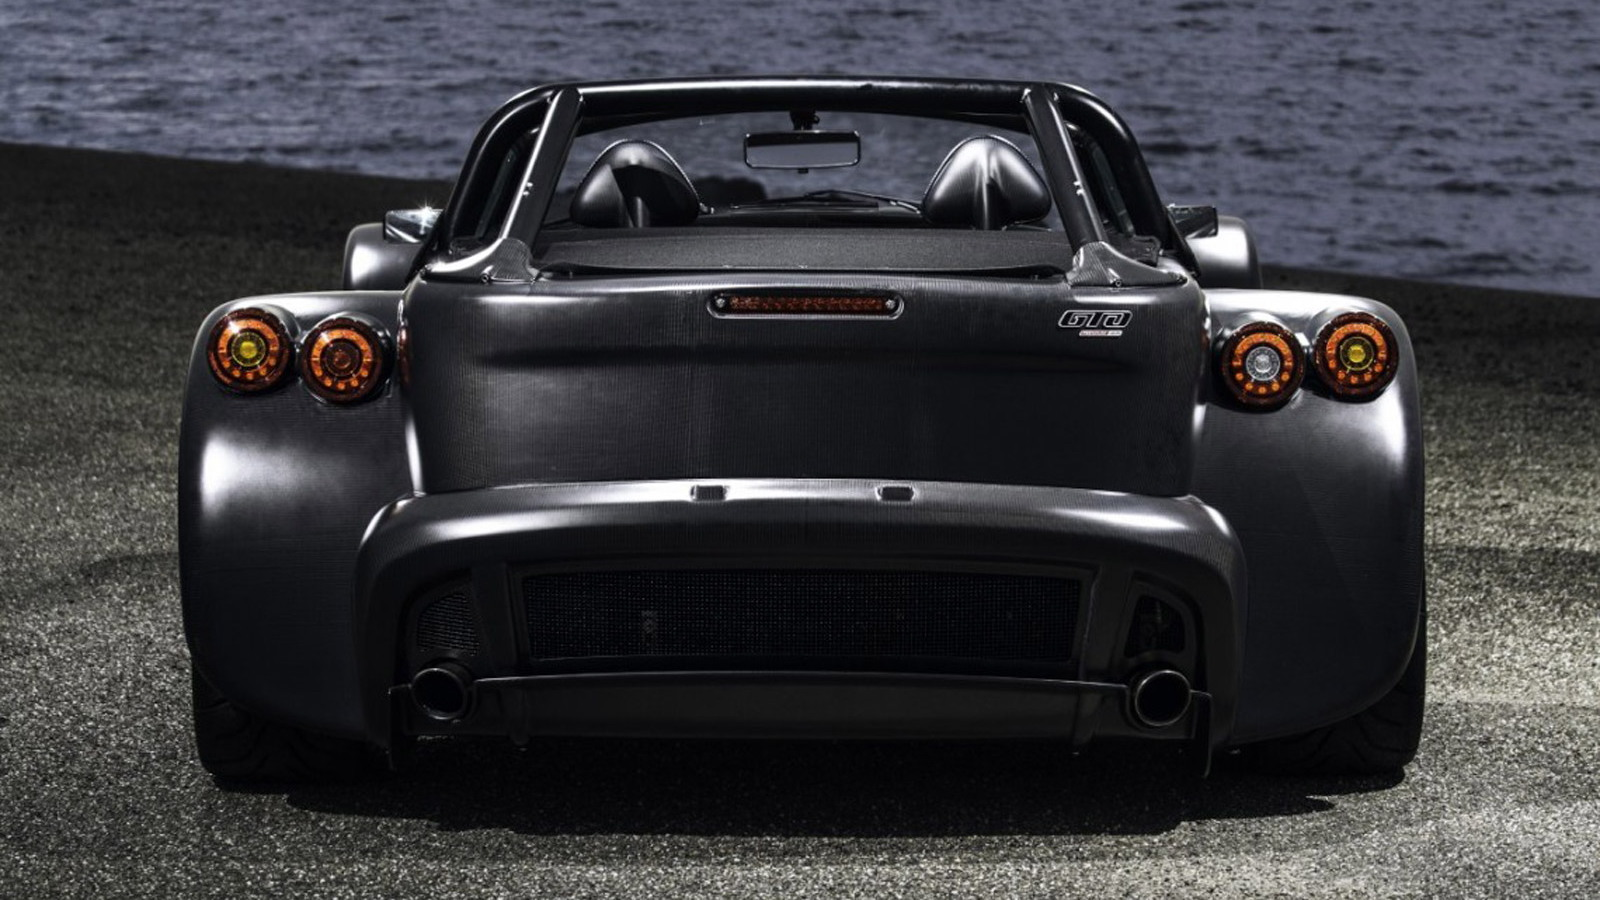 2015 Donkervoort D8 GTO Bare Naked Carbon Edition